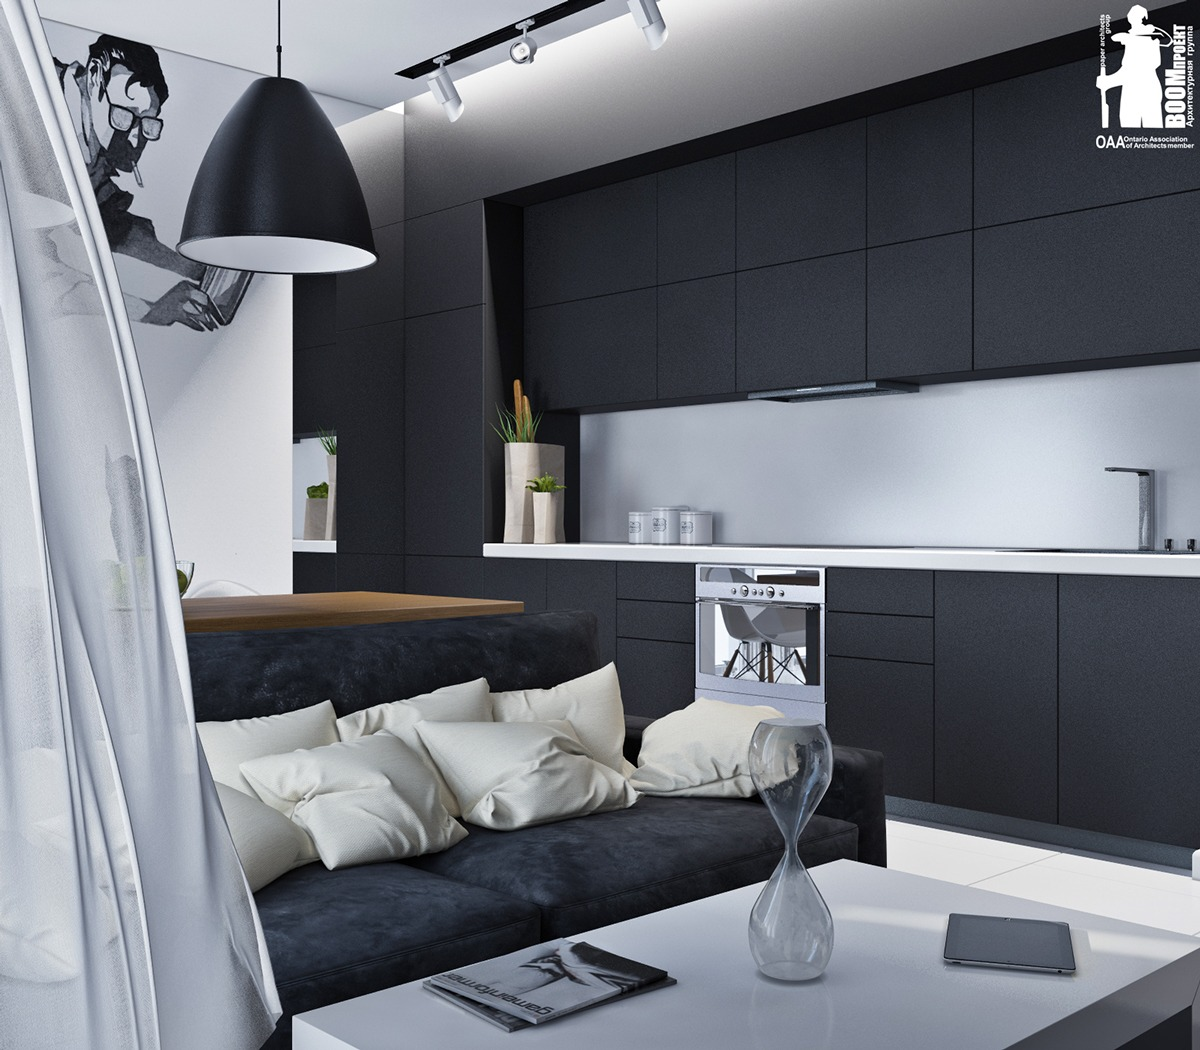 Artistic Monochrome Apartment - Artistic apartments with monochromatic color schemes